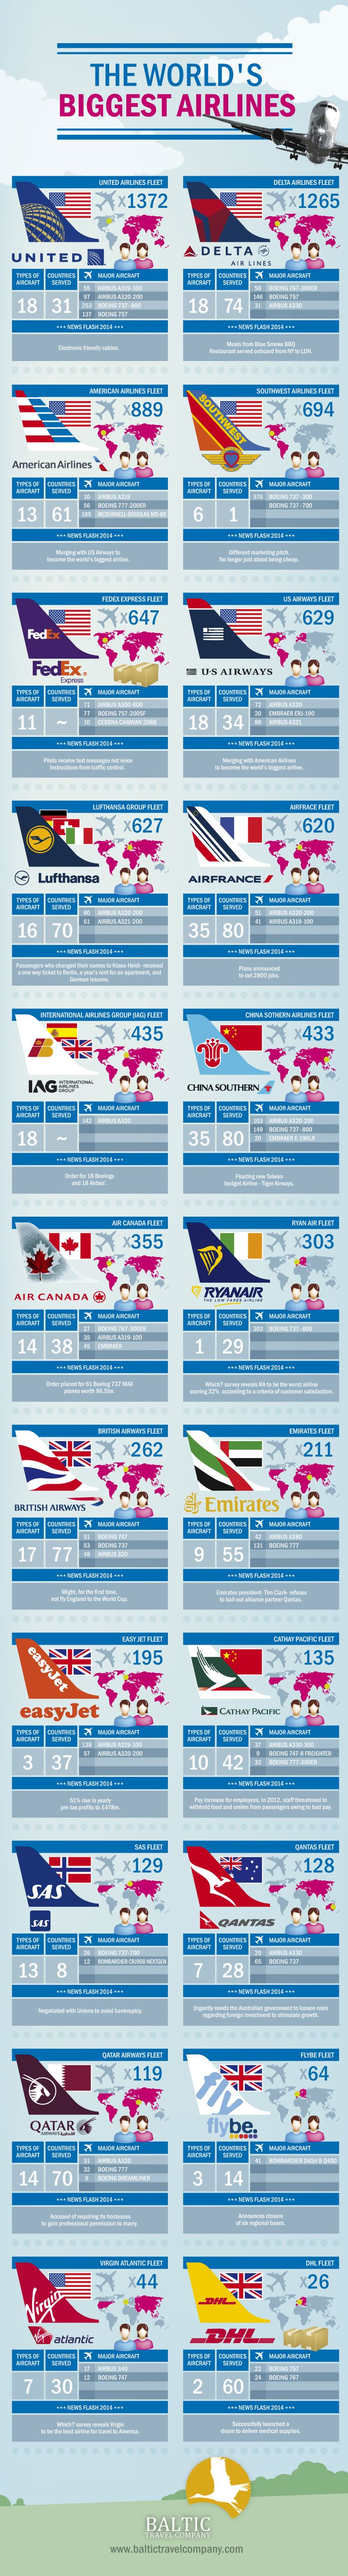 The World's Biggest Airlines   #Infographic #Airlines  #Travel